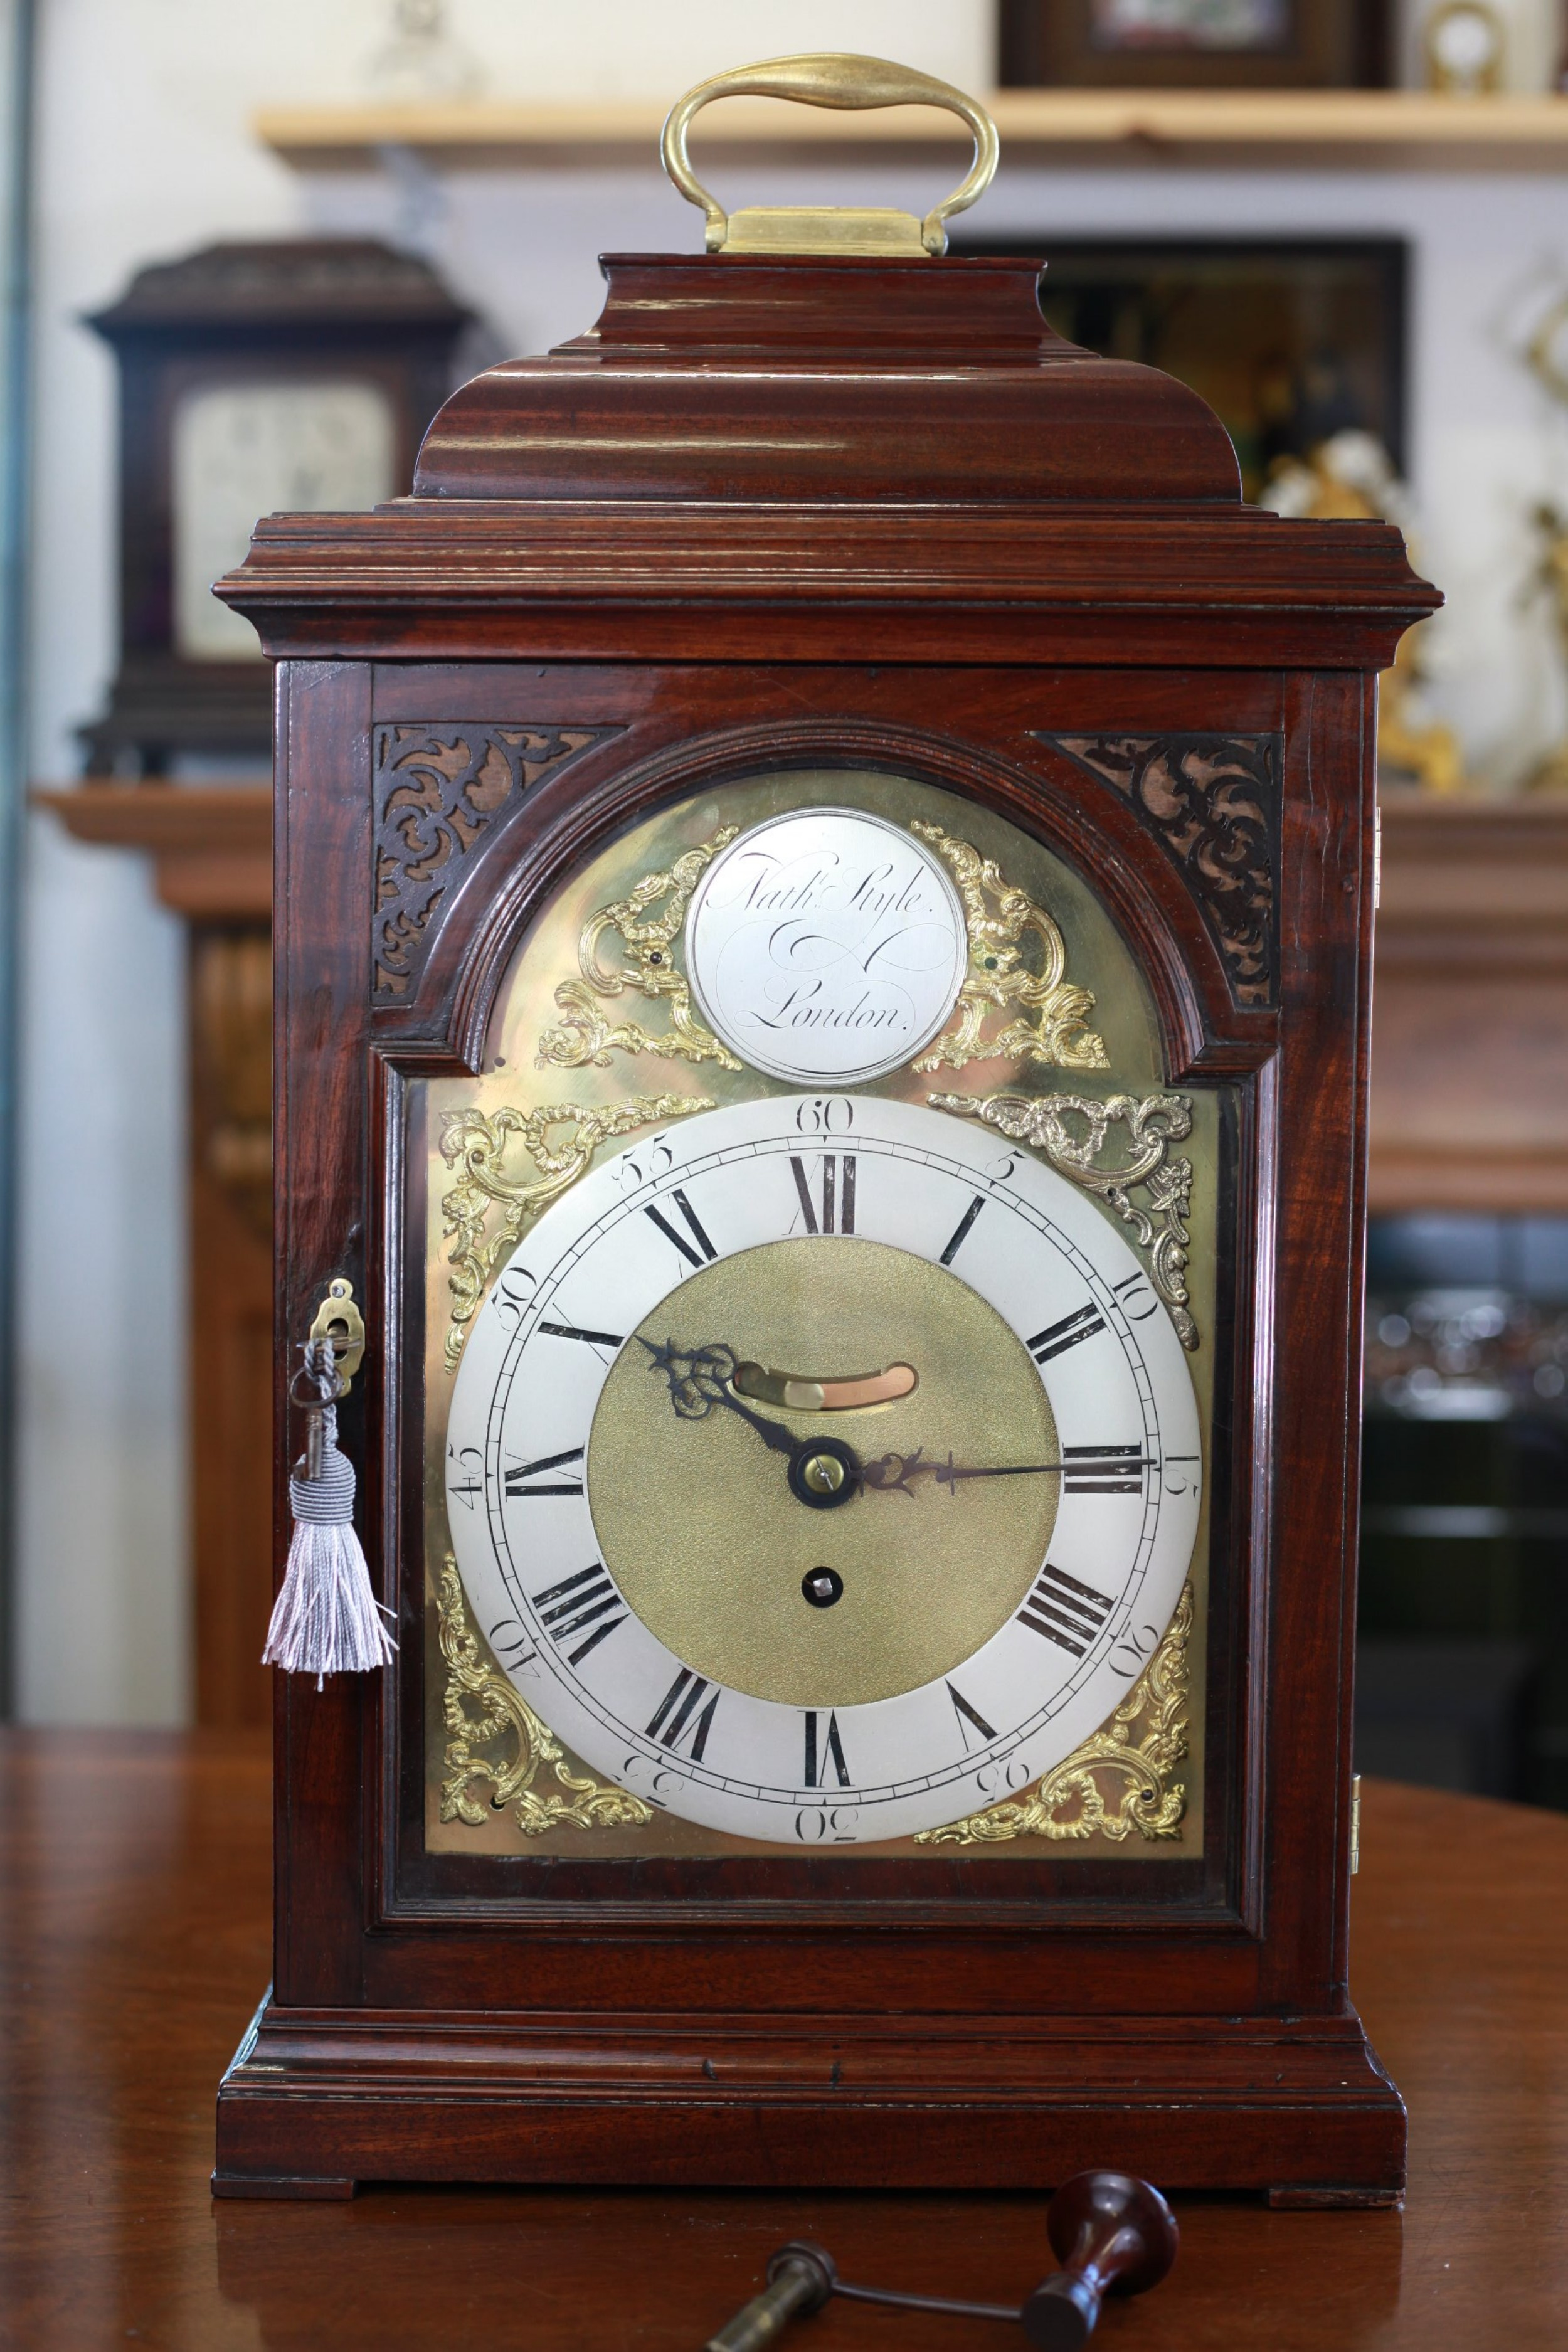 rare george ii mahogany bracket clock with verge escapement and mock pendulum